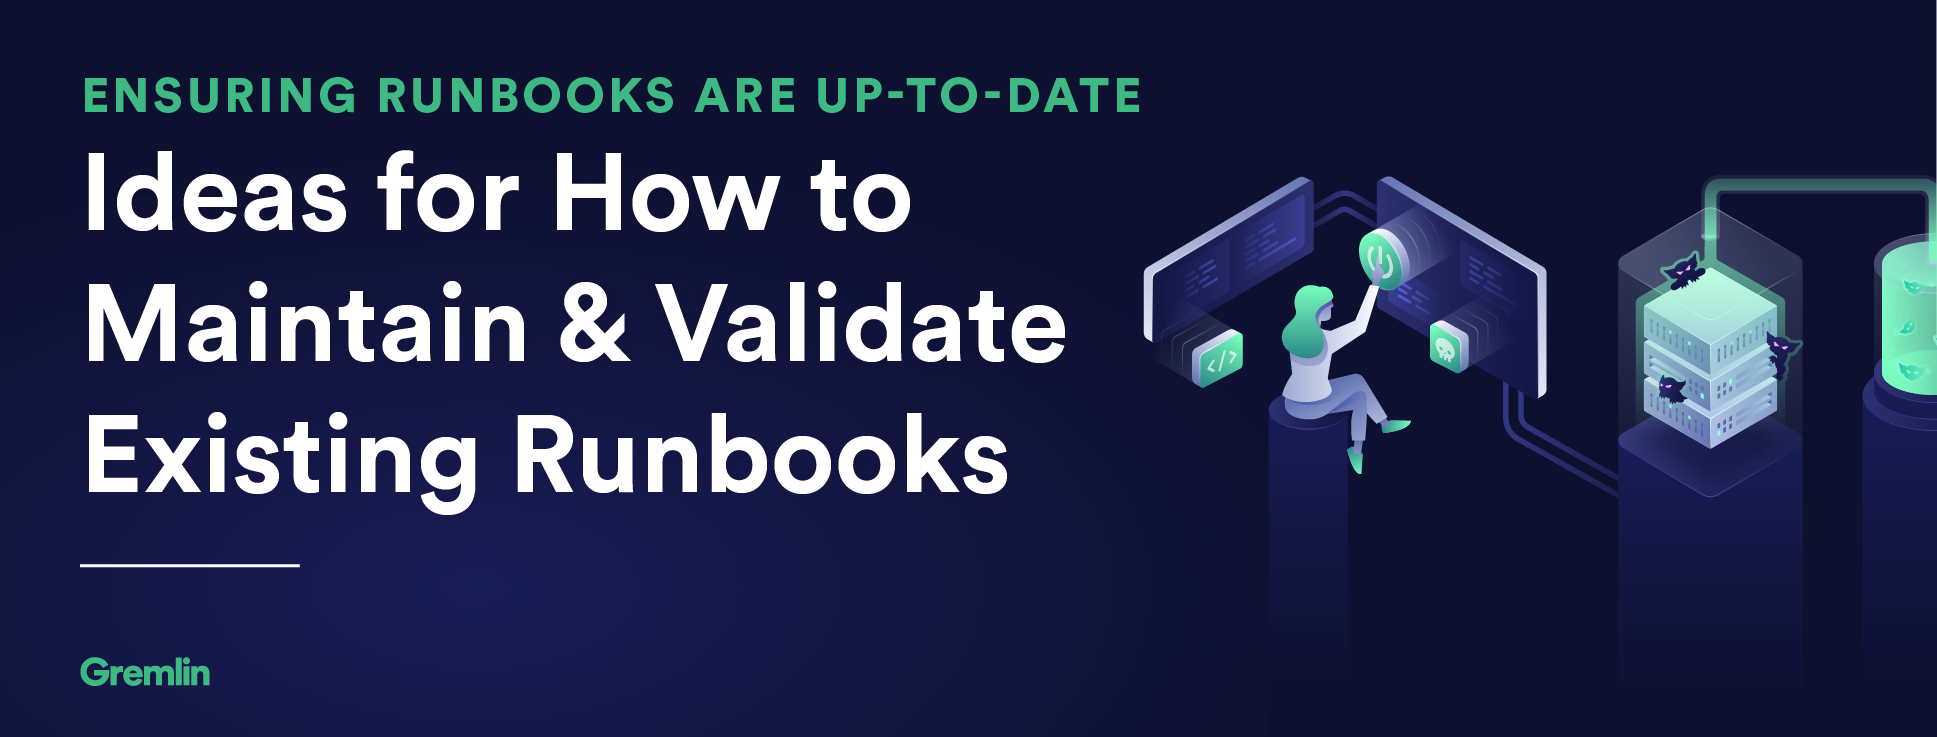 Ensuring Runbooks are Up-to-Date